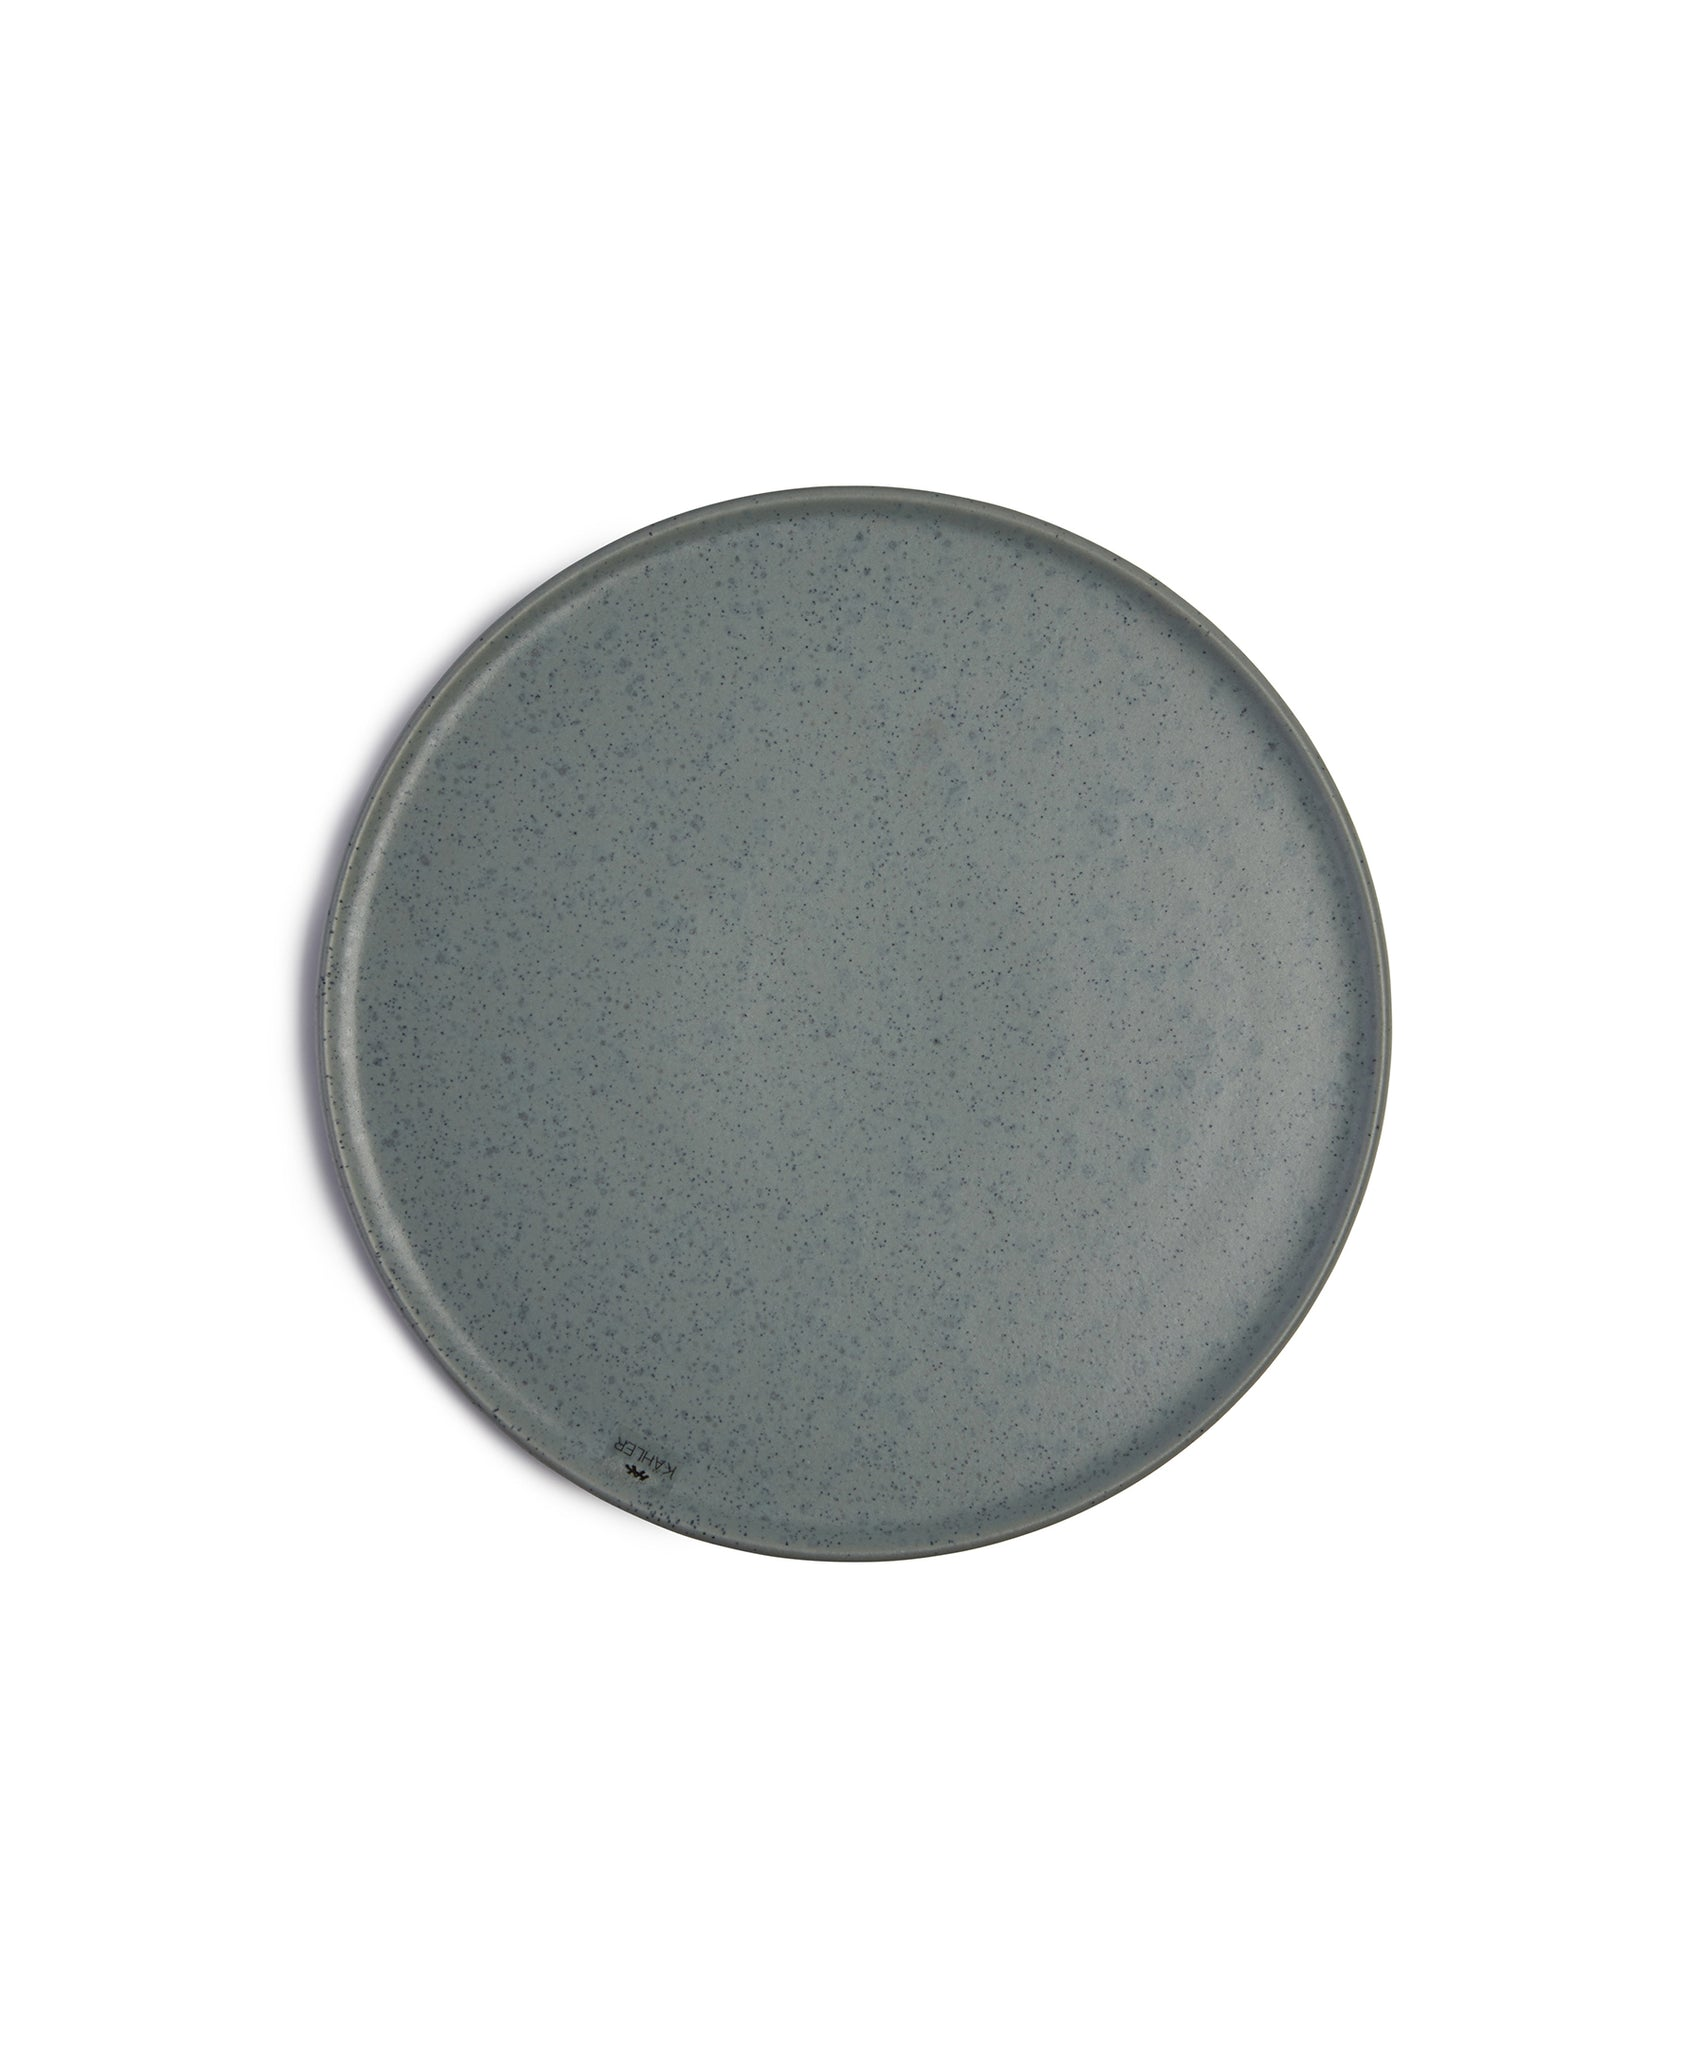 Ombria Plate Ø220mm (Granite Green) by Kähler